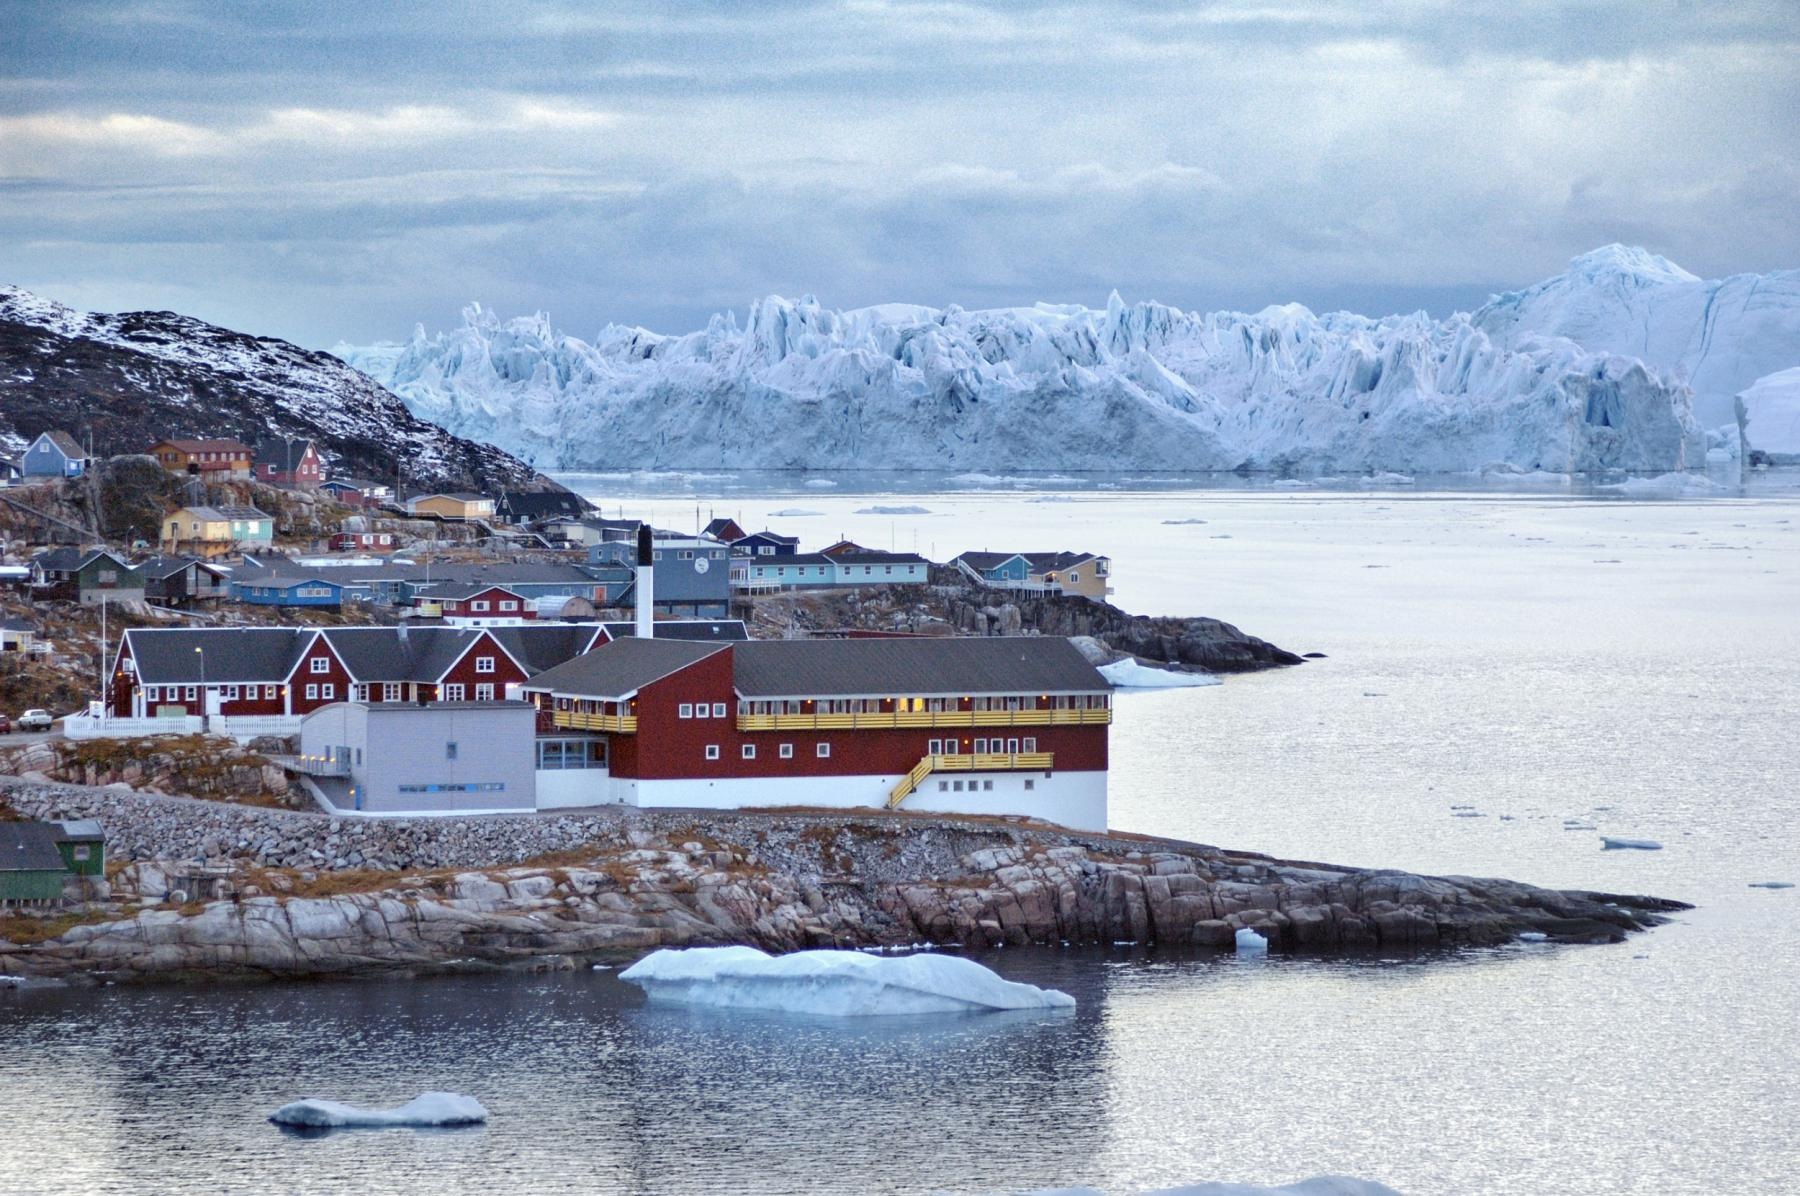 Northern Lights with Glaciers and Icebergs - Greenland starting at Kangerlussuaq, Greenland